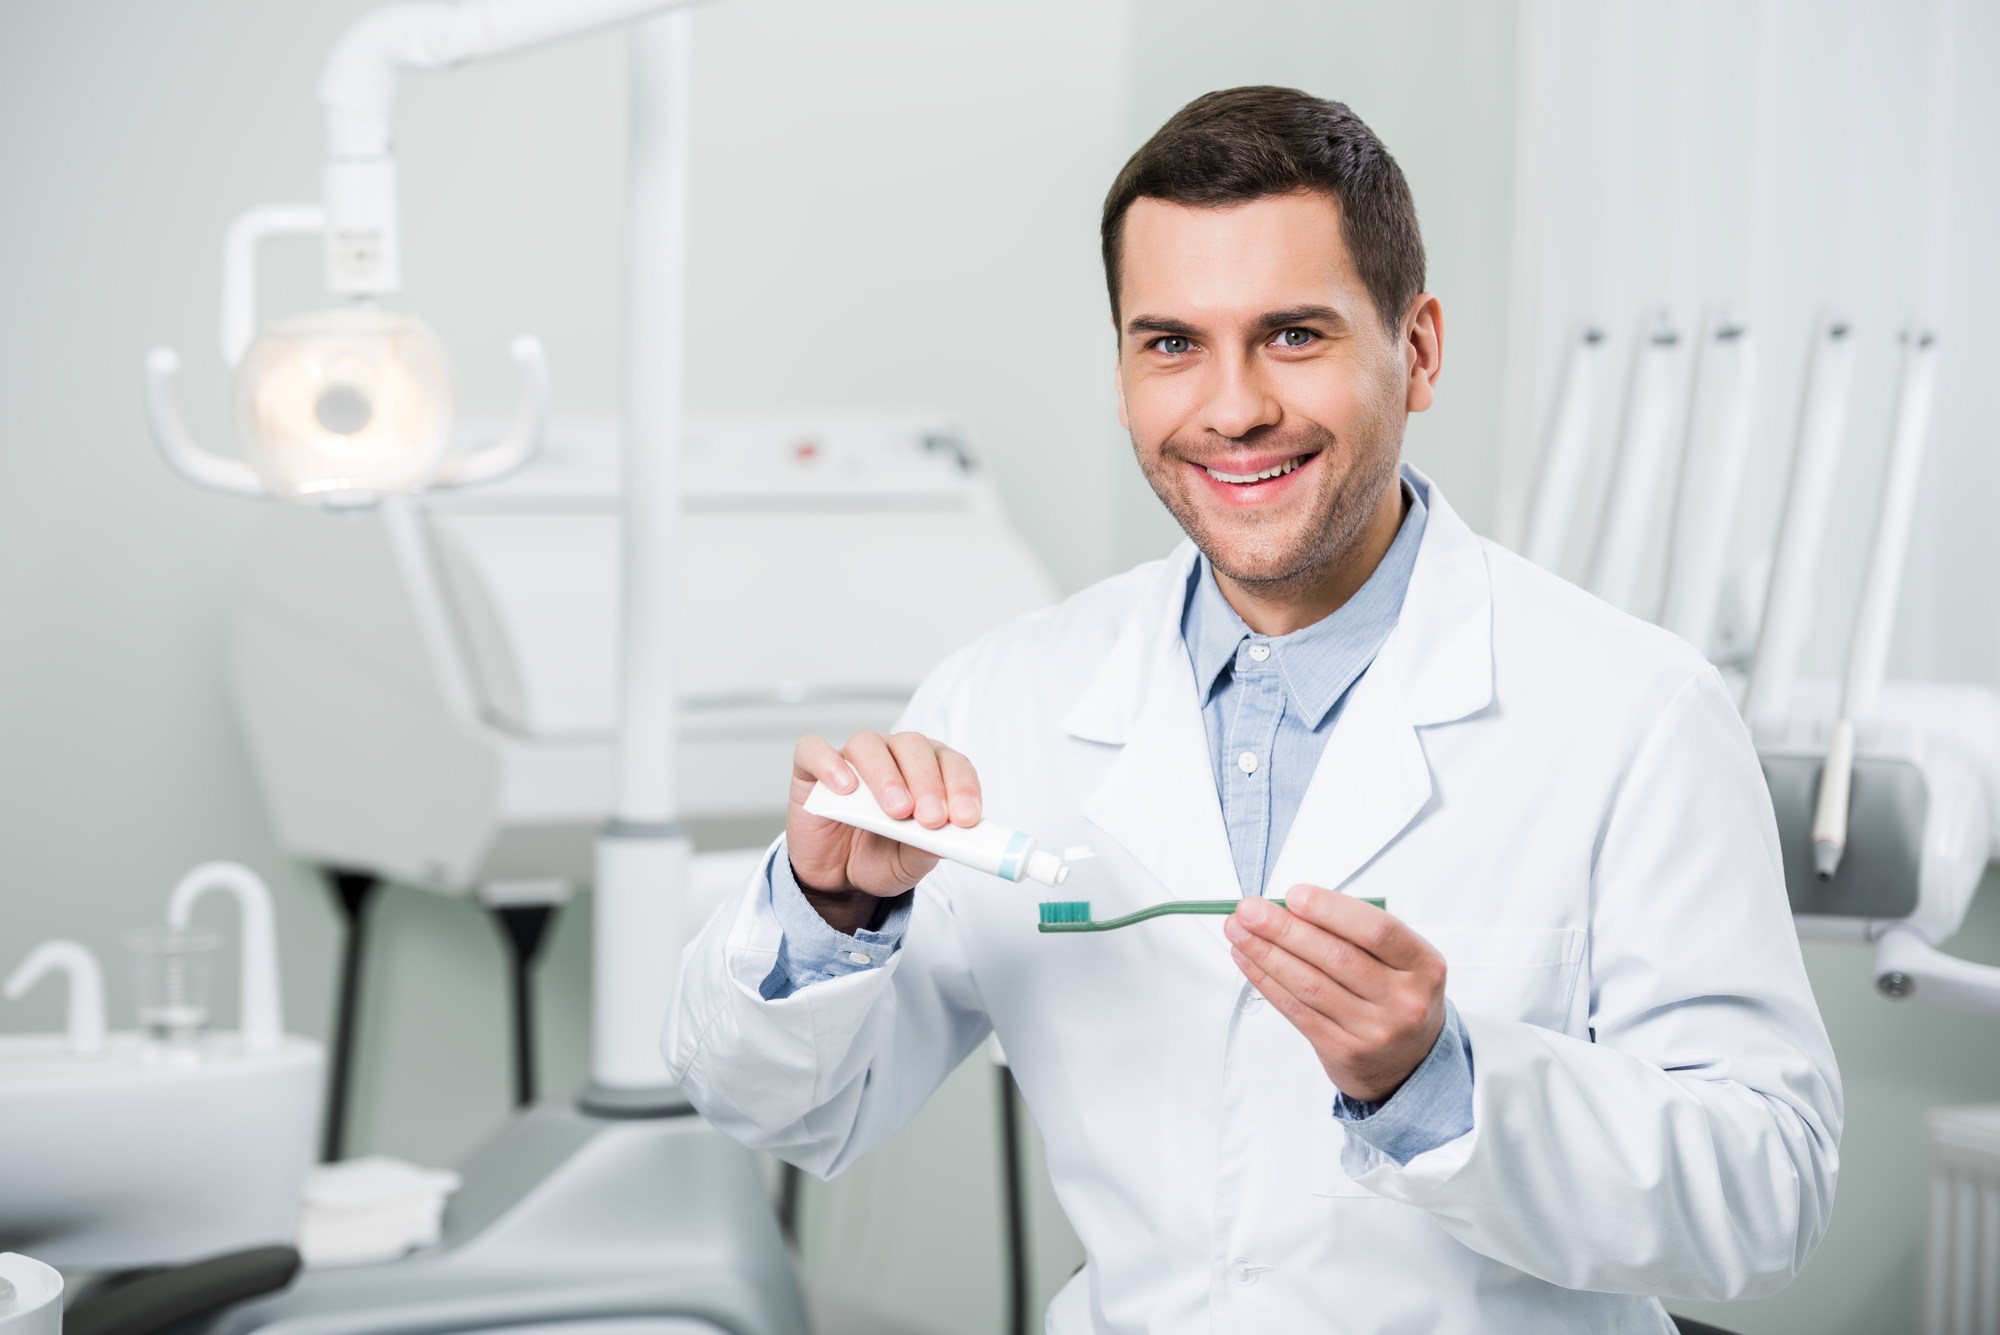 where are the best dental implants pembroke pines?